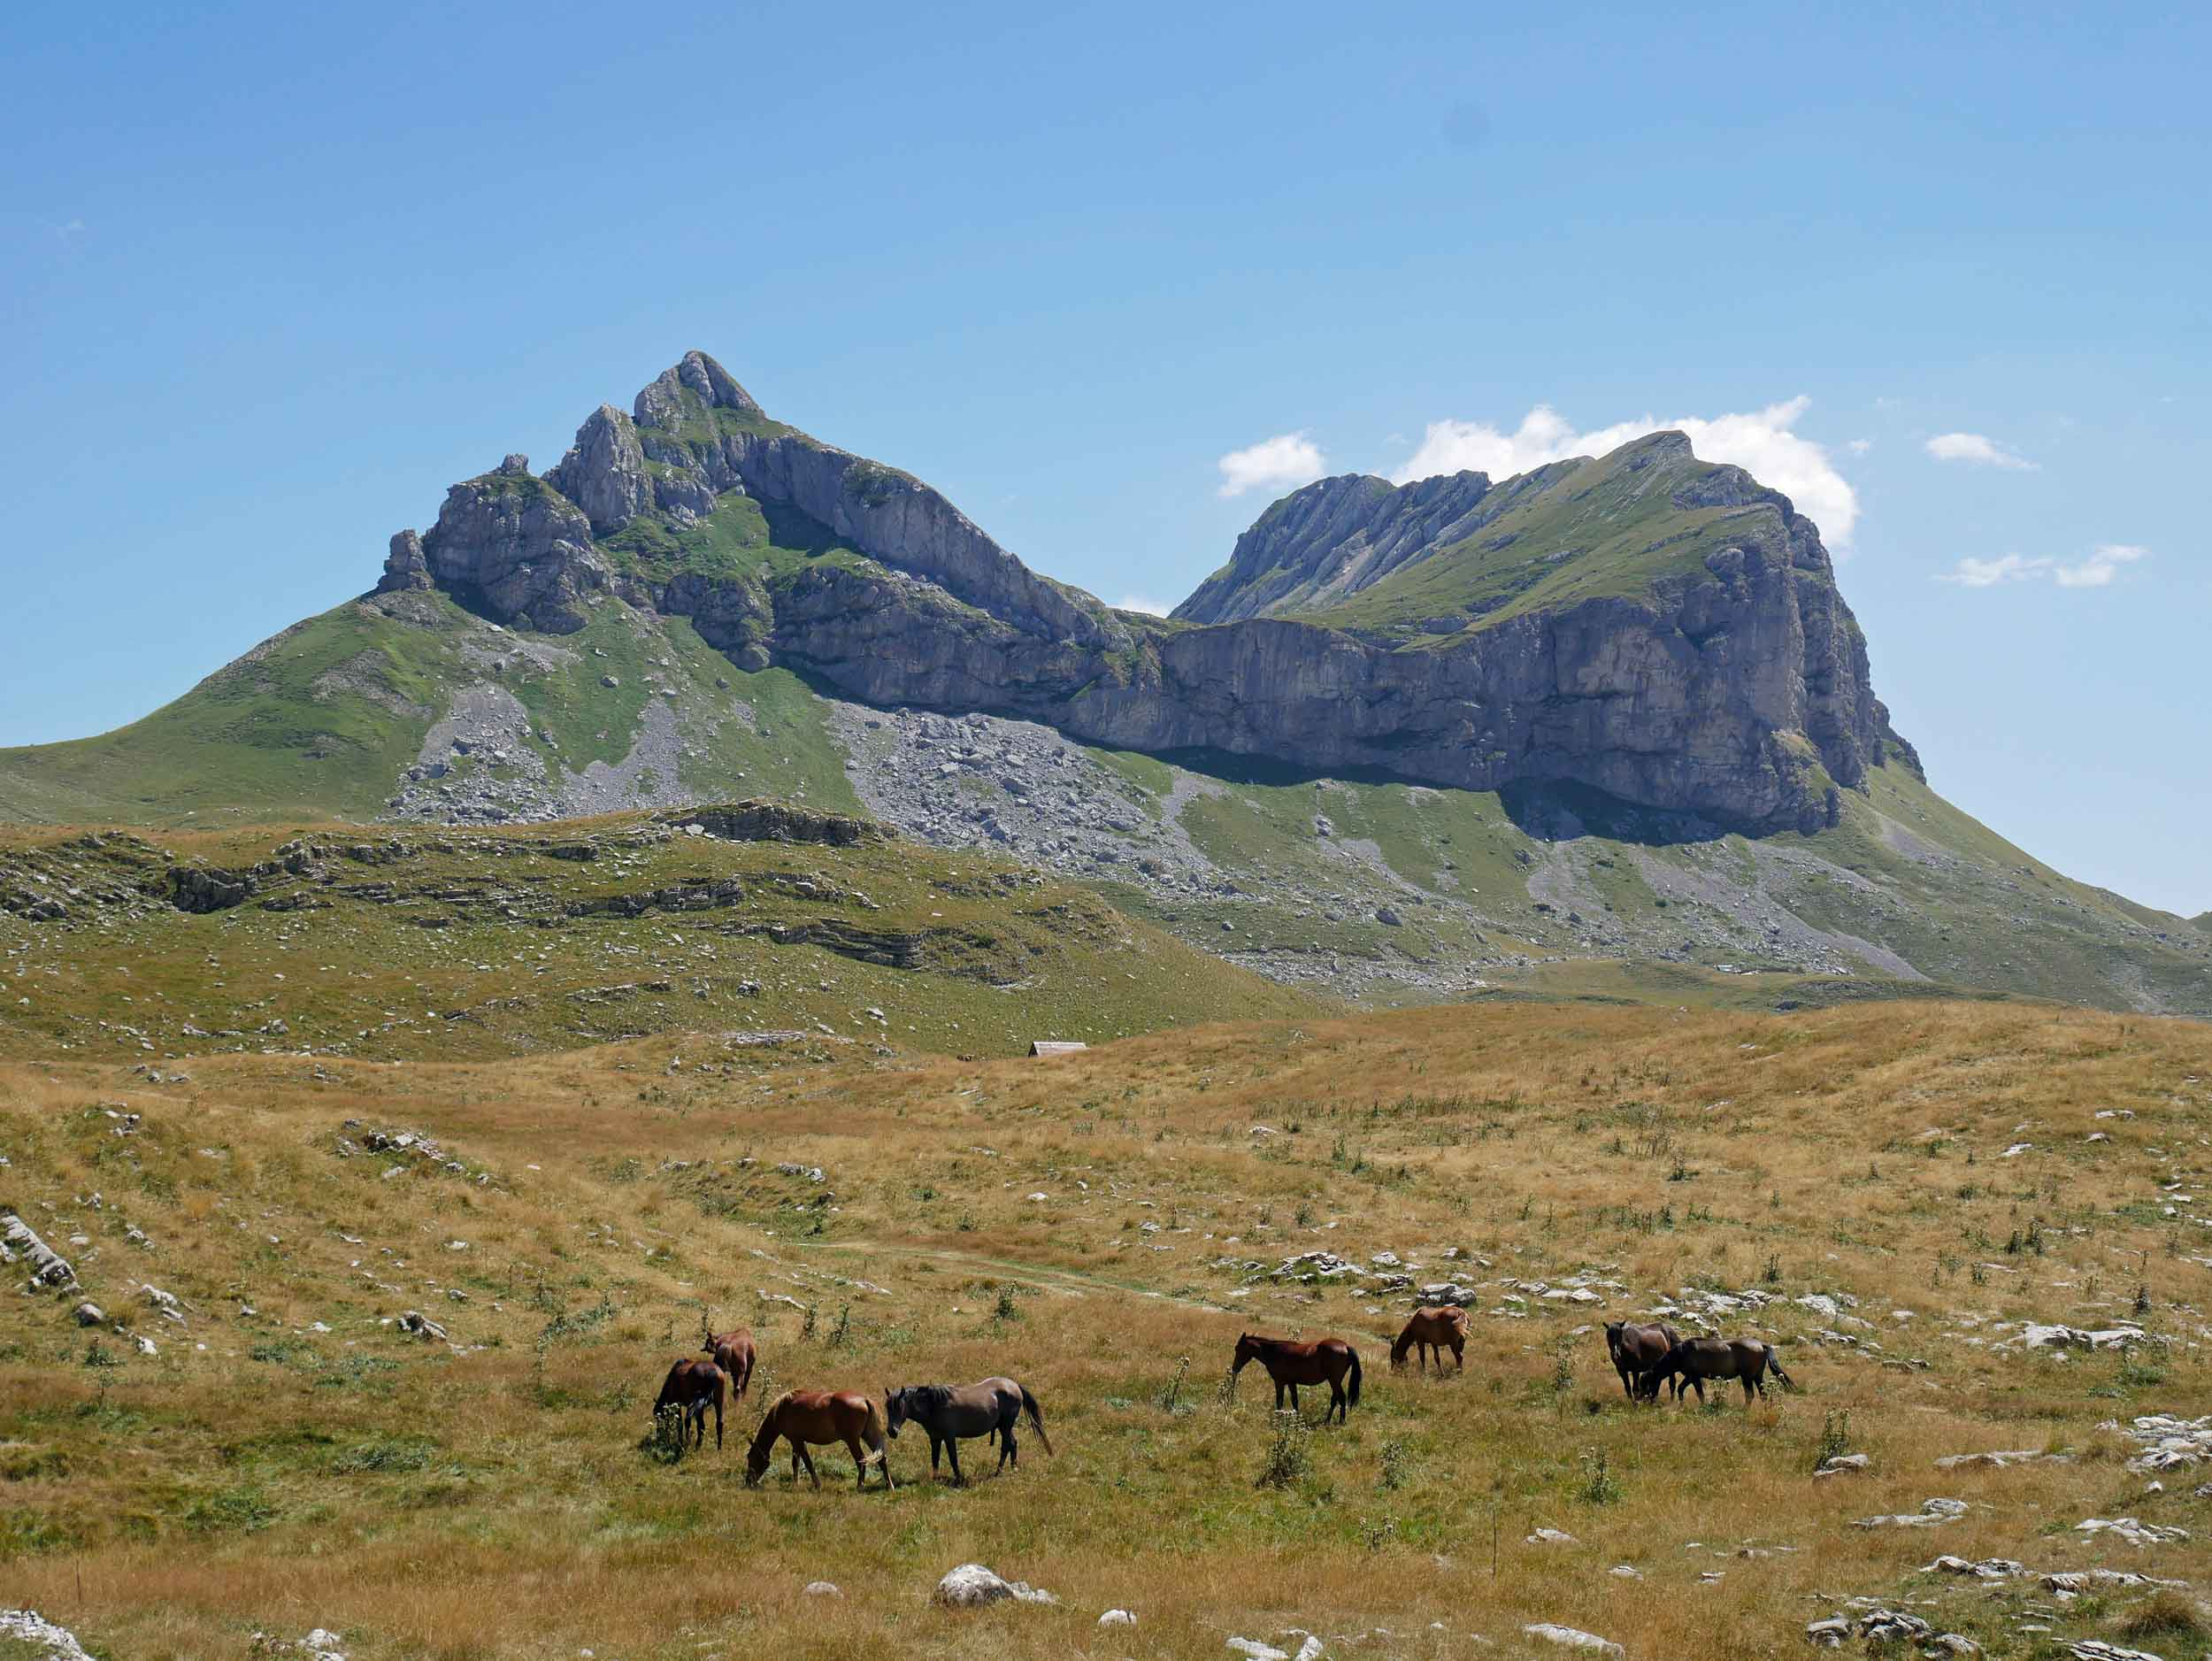 One of our favorite views was of Sedlena Greda peak (2,227m) with horses grazing in the fields below.